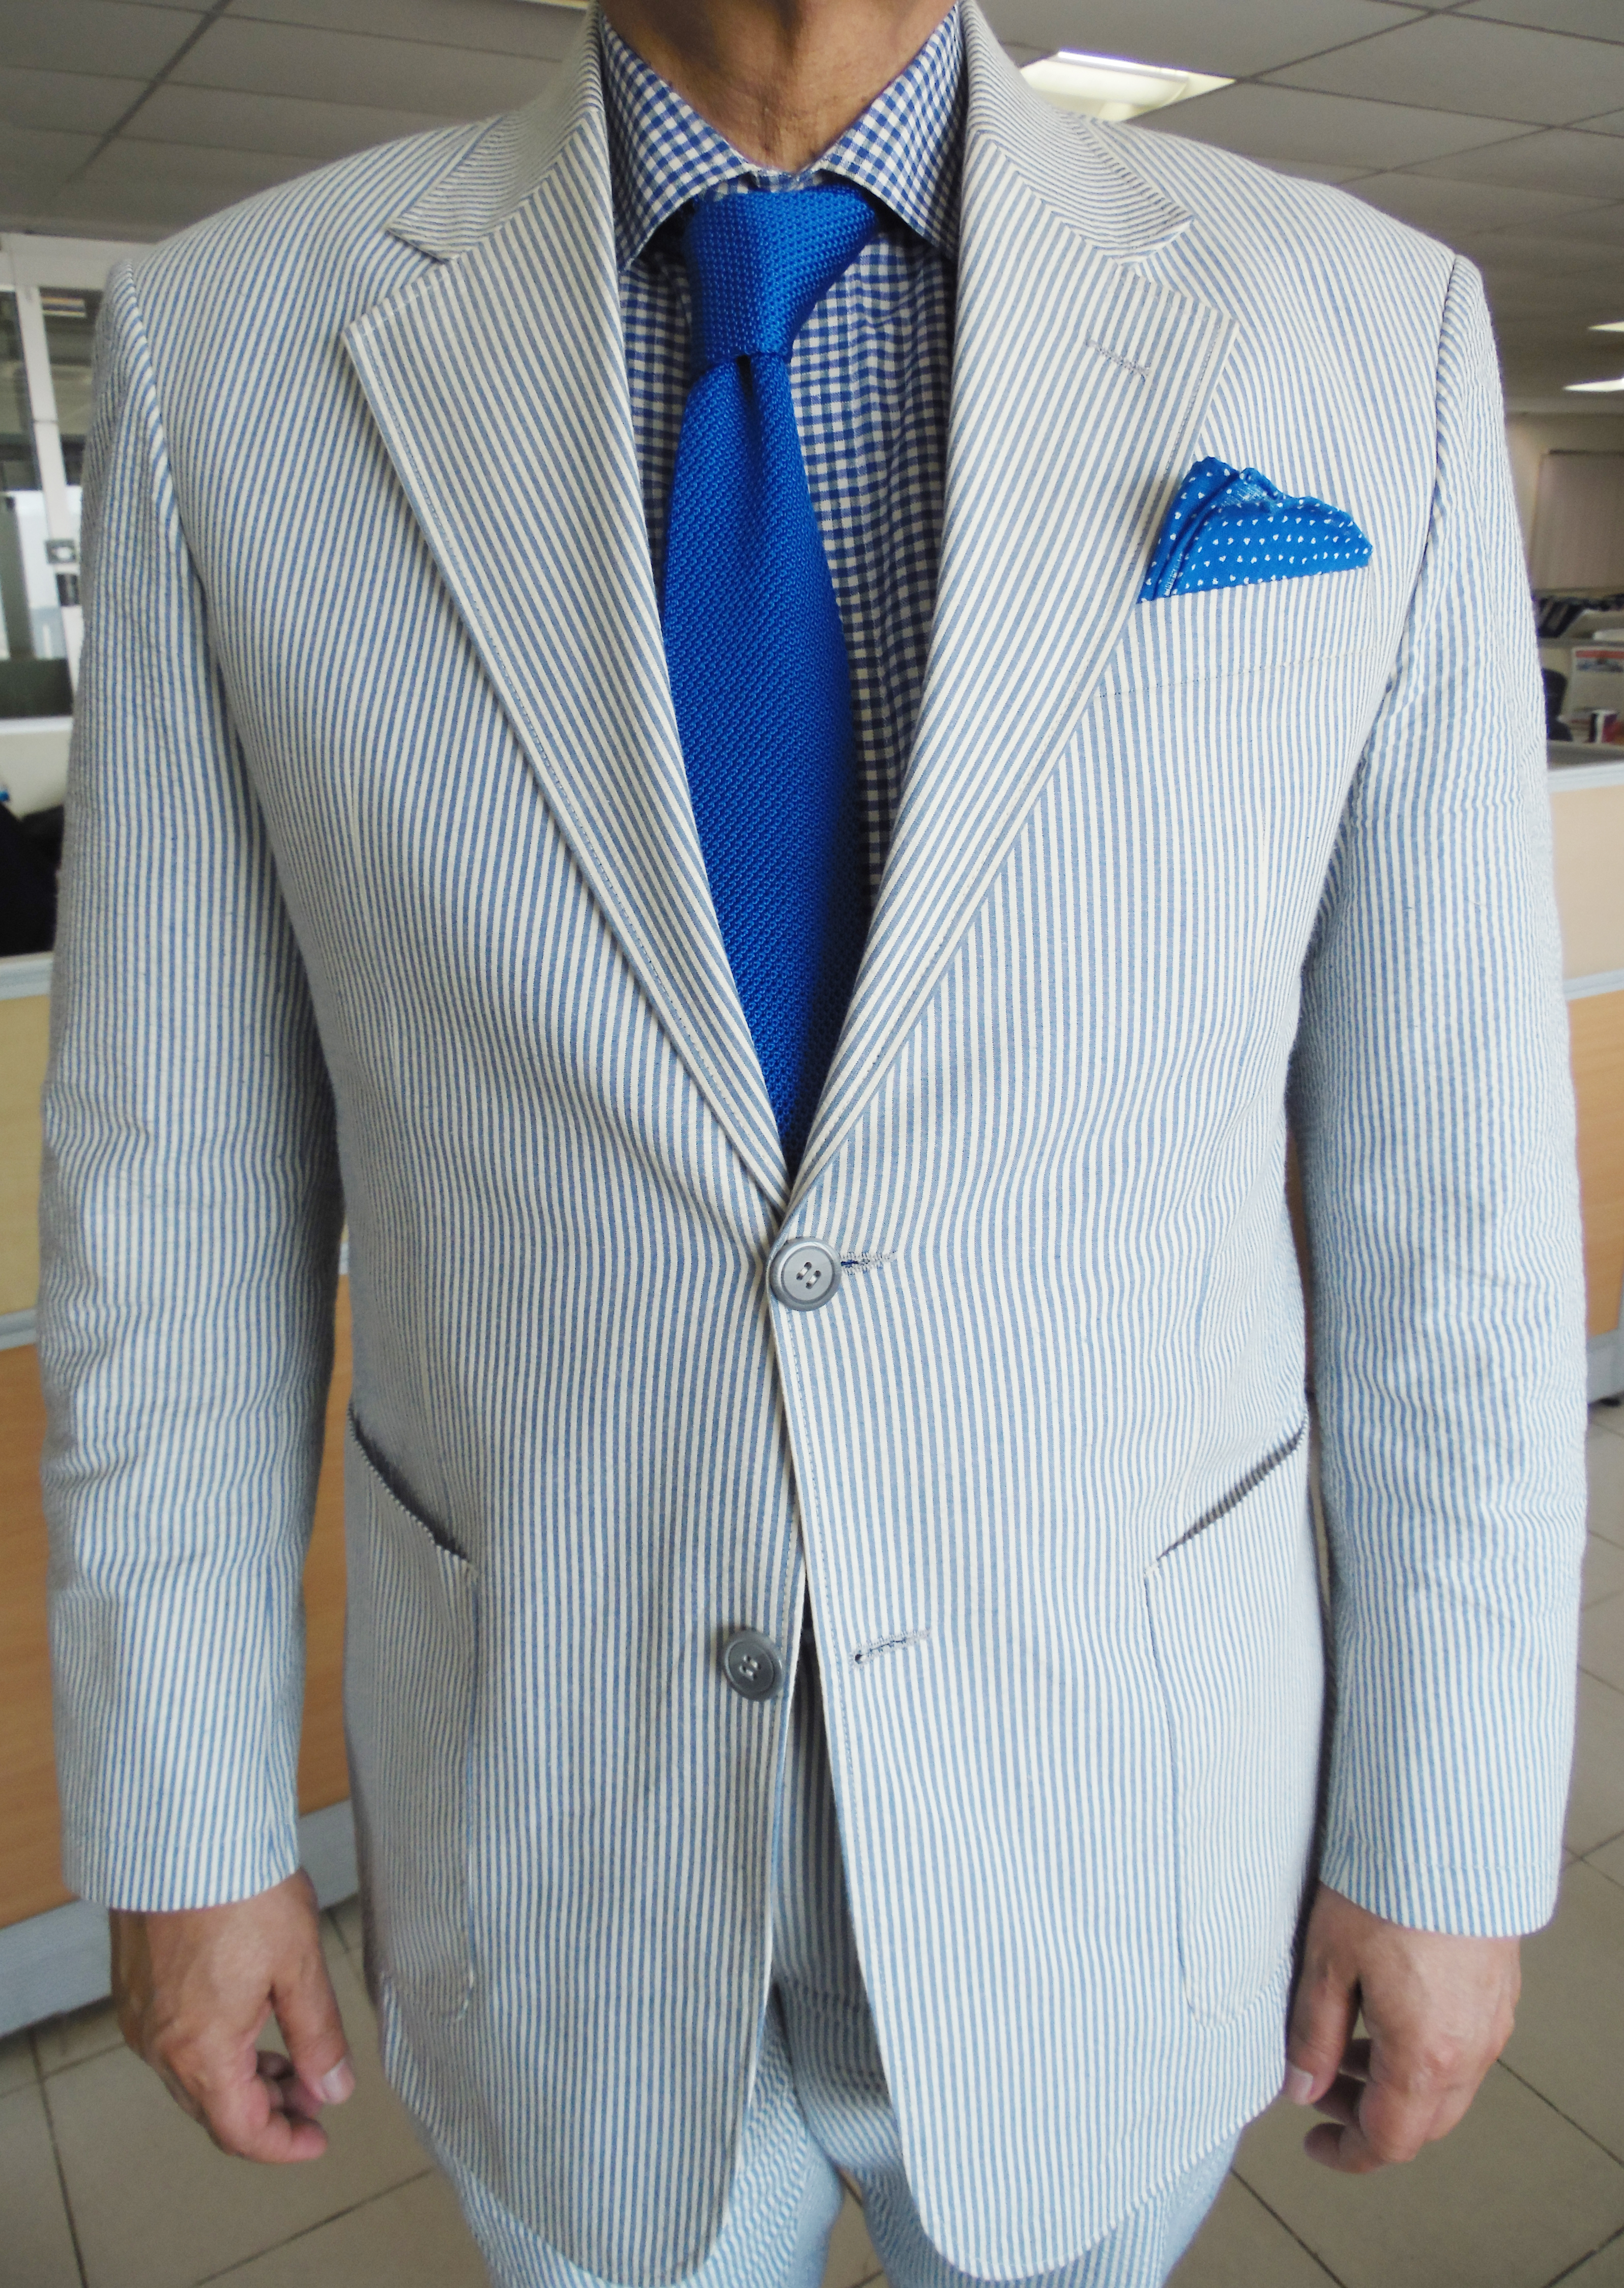 Blue White Gingham Shirt With French Cuffs This Is A